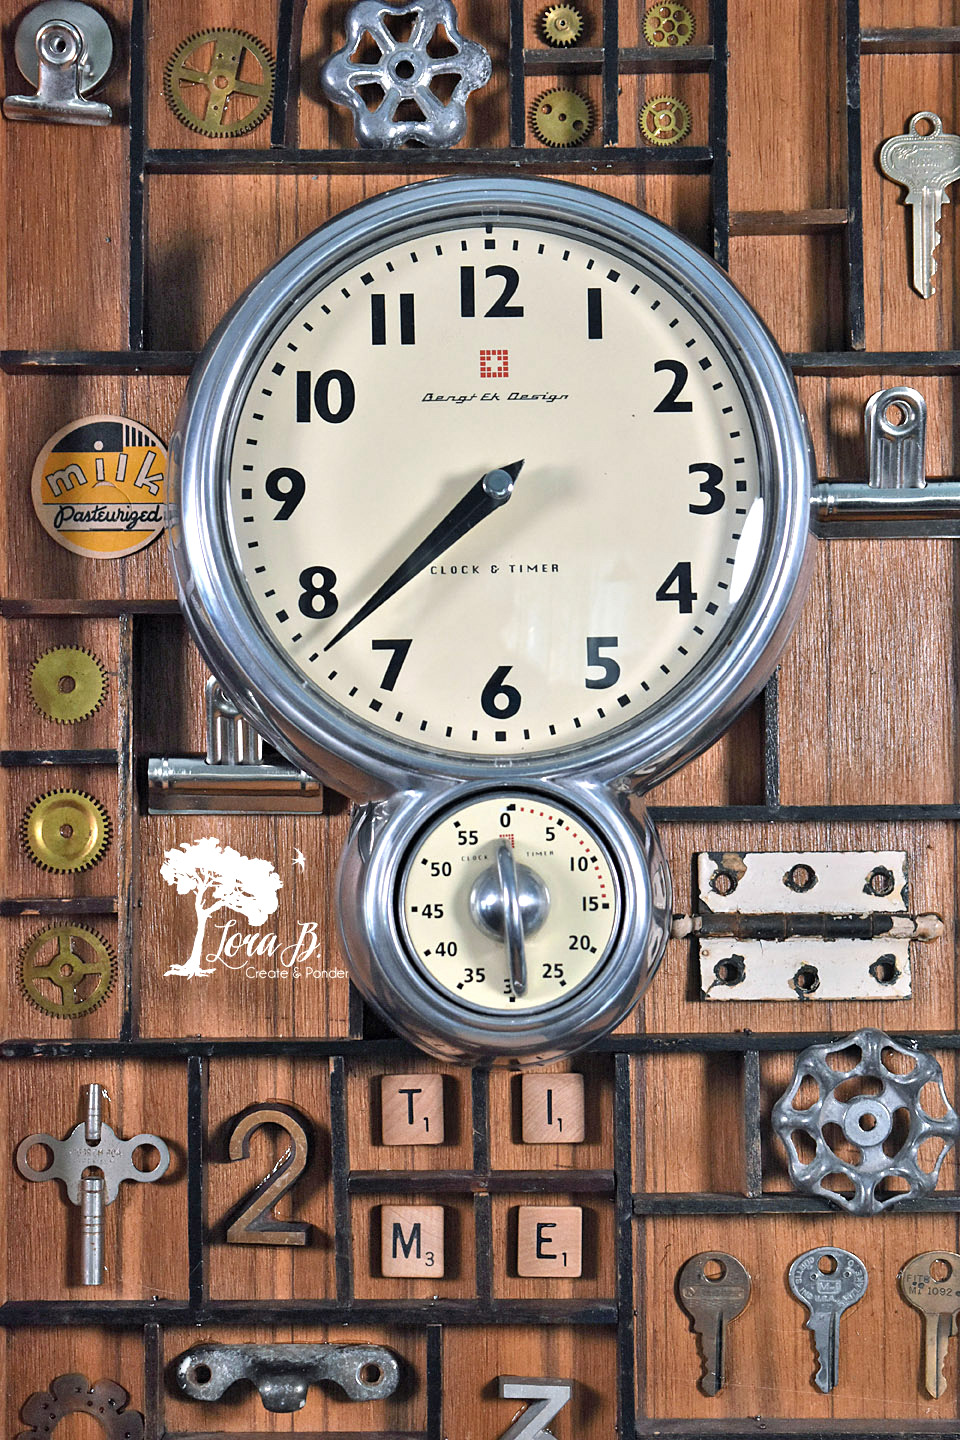 Printer's Box Clock backdrop by Lora B, featured on Funky Junk Interiors